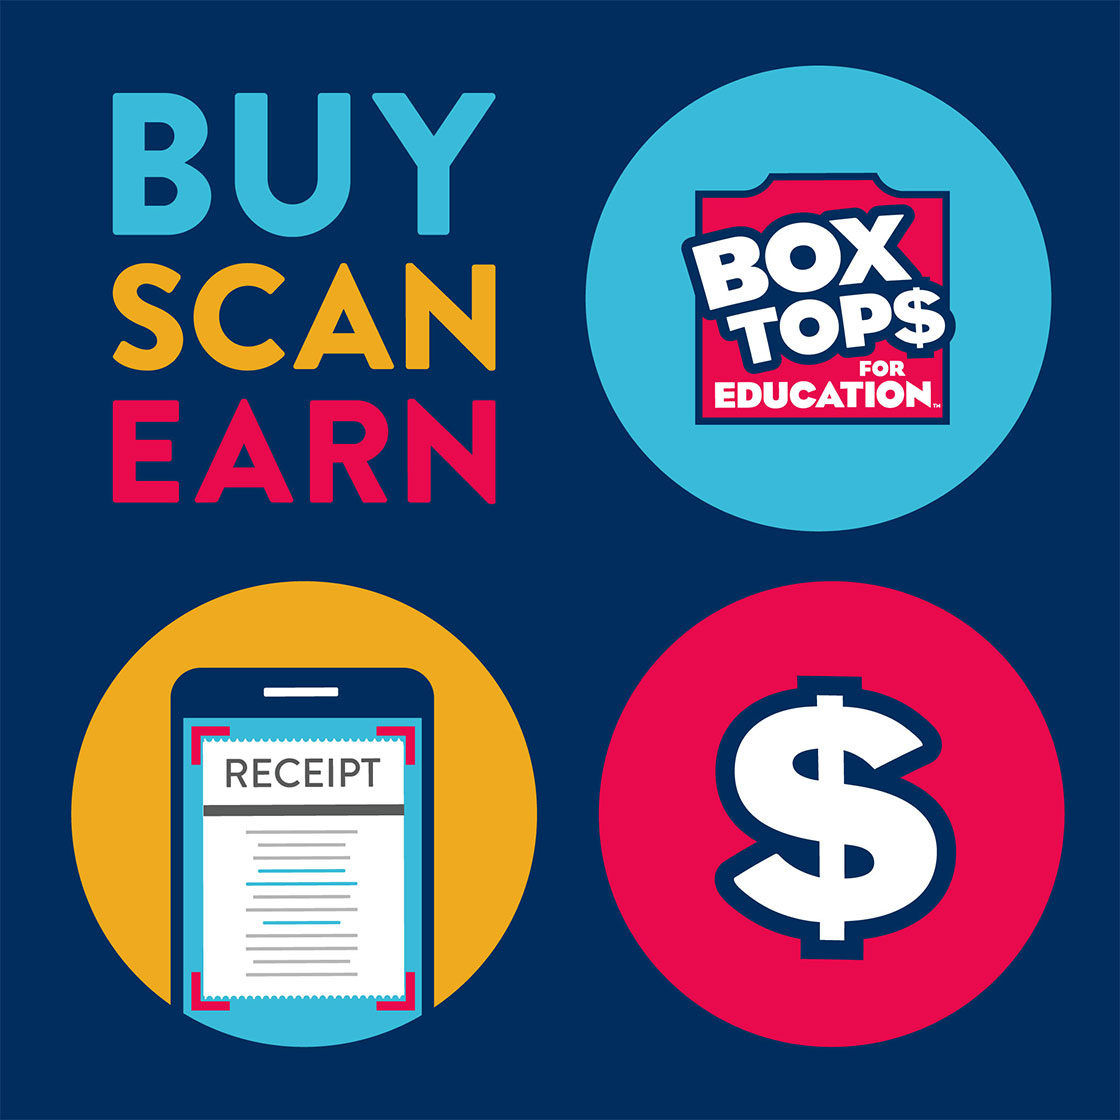 BUY SCAN EARN - BOX TOPS FOR EDUCATION